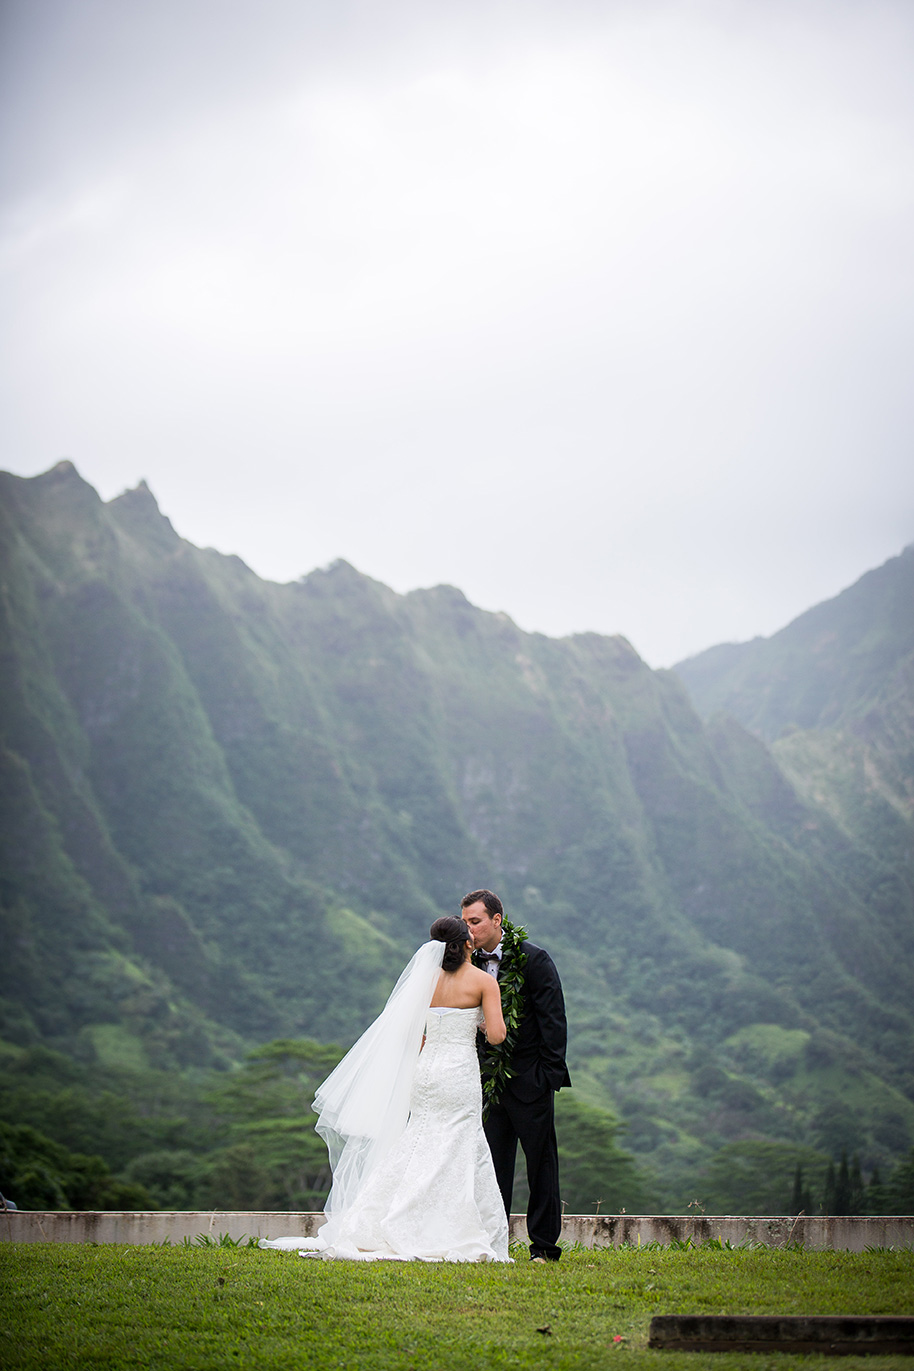 Koolau-Ballrooms-Wedding-041116-7.jpg